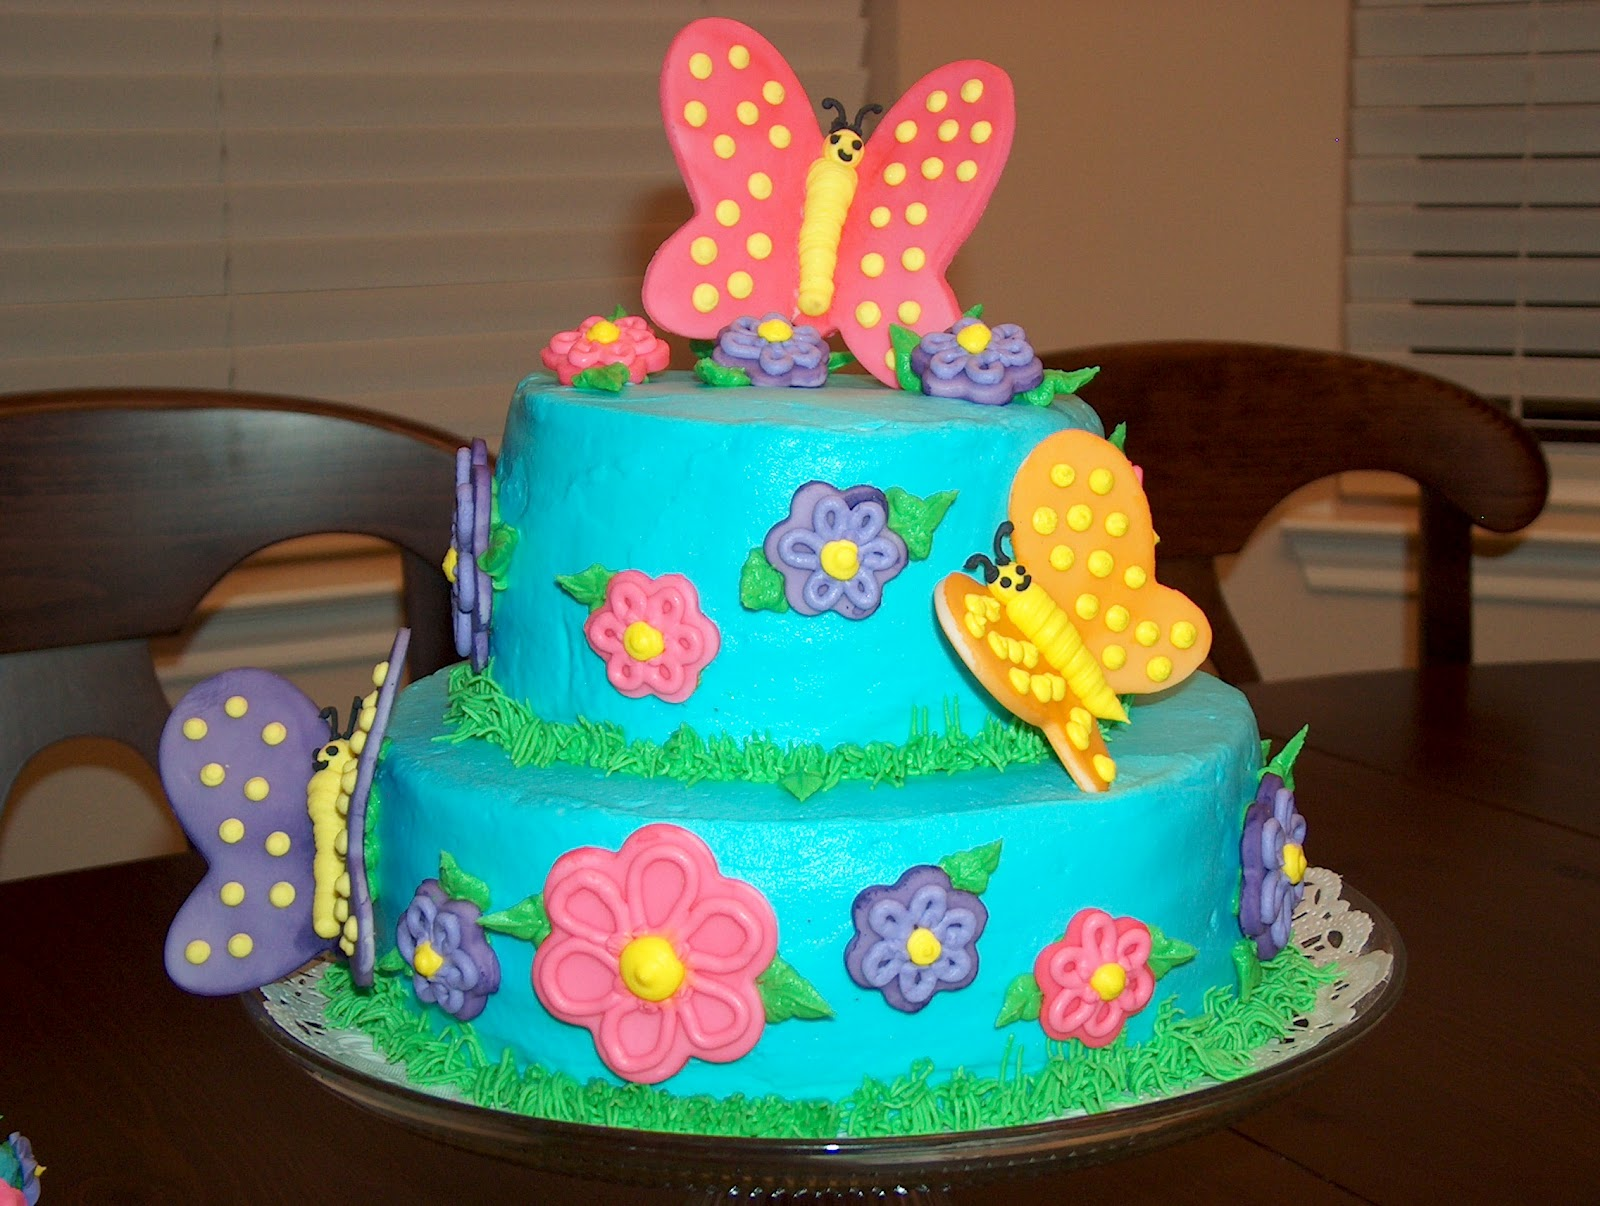 Decoration Of Birthday Cake : Themed Cakes, Birthday Cakes, Wedding Cakes: ButterFly ...